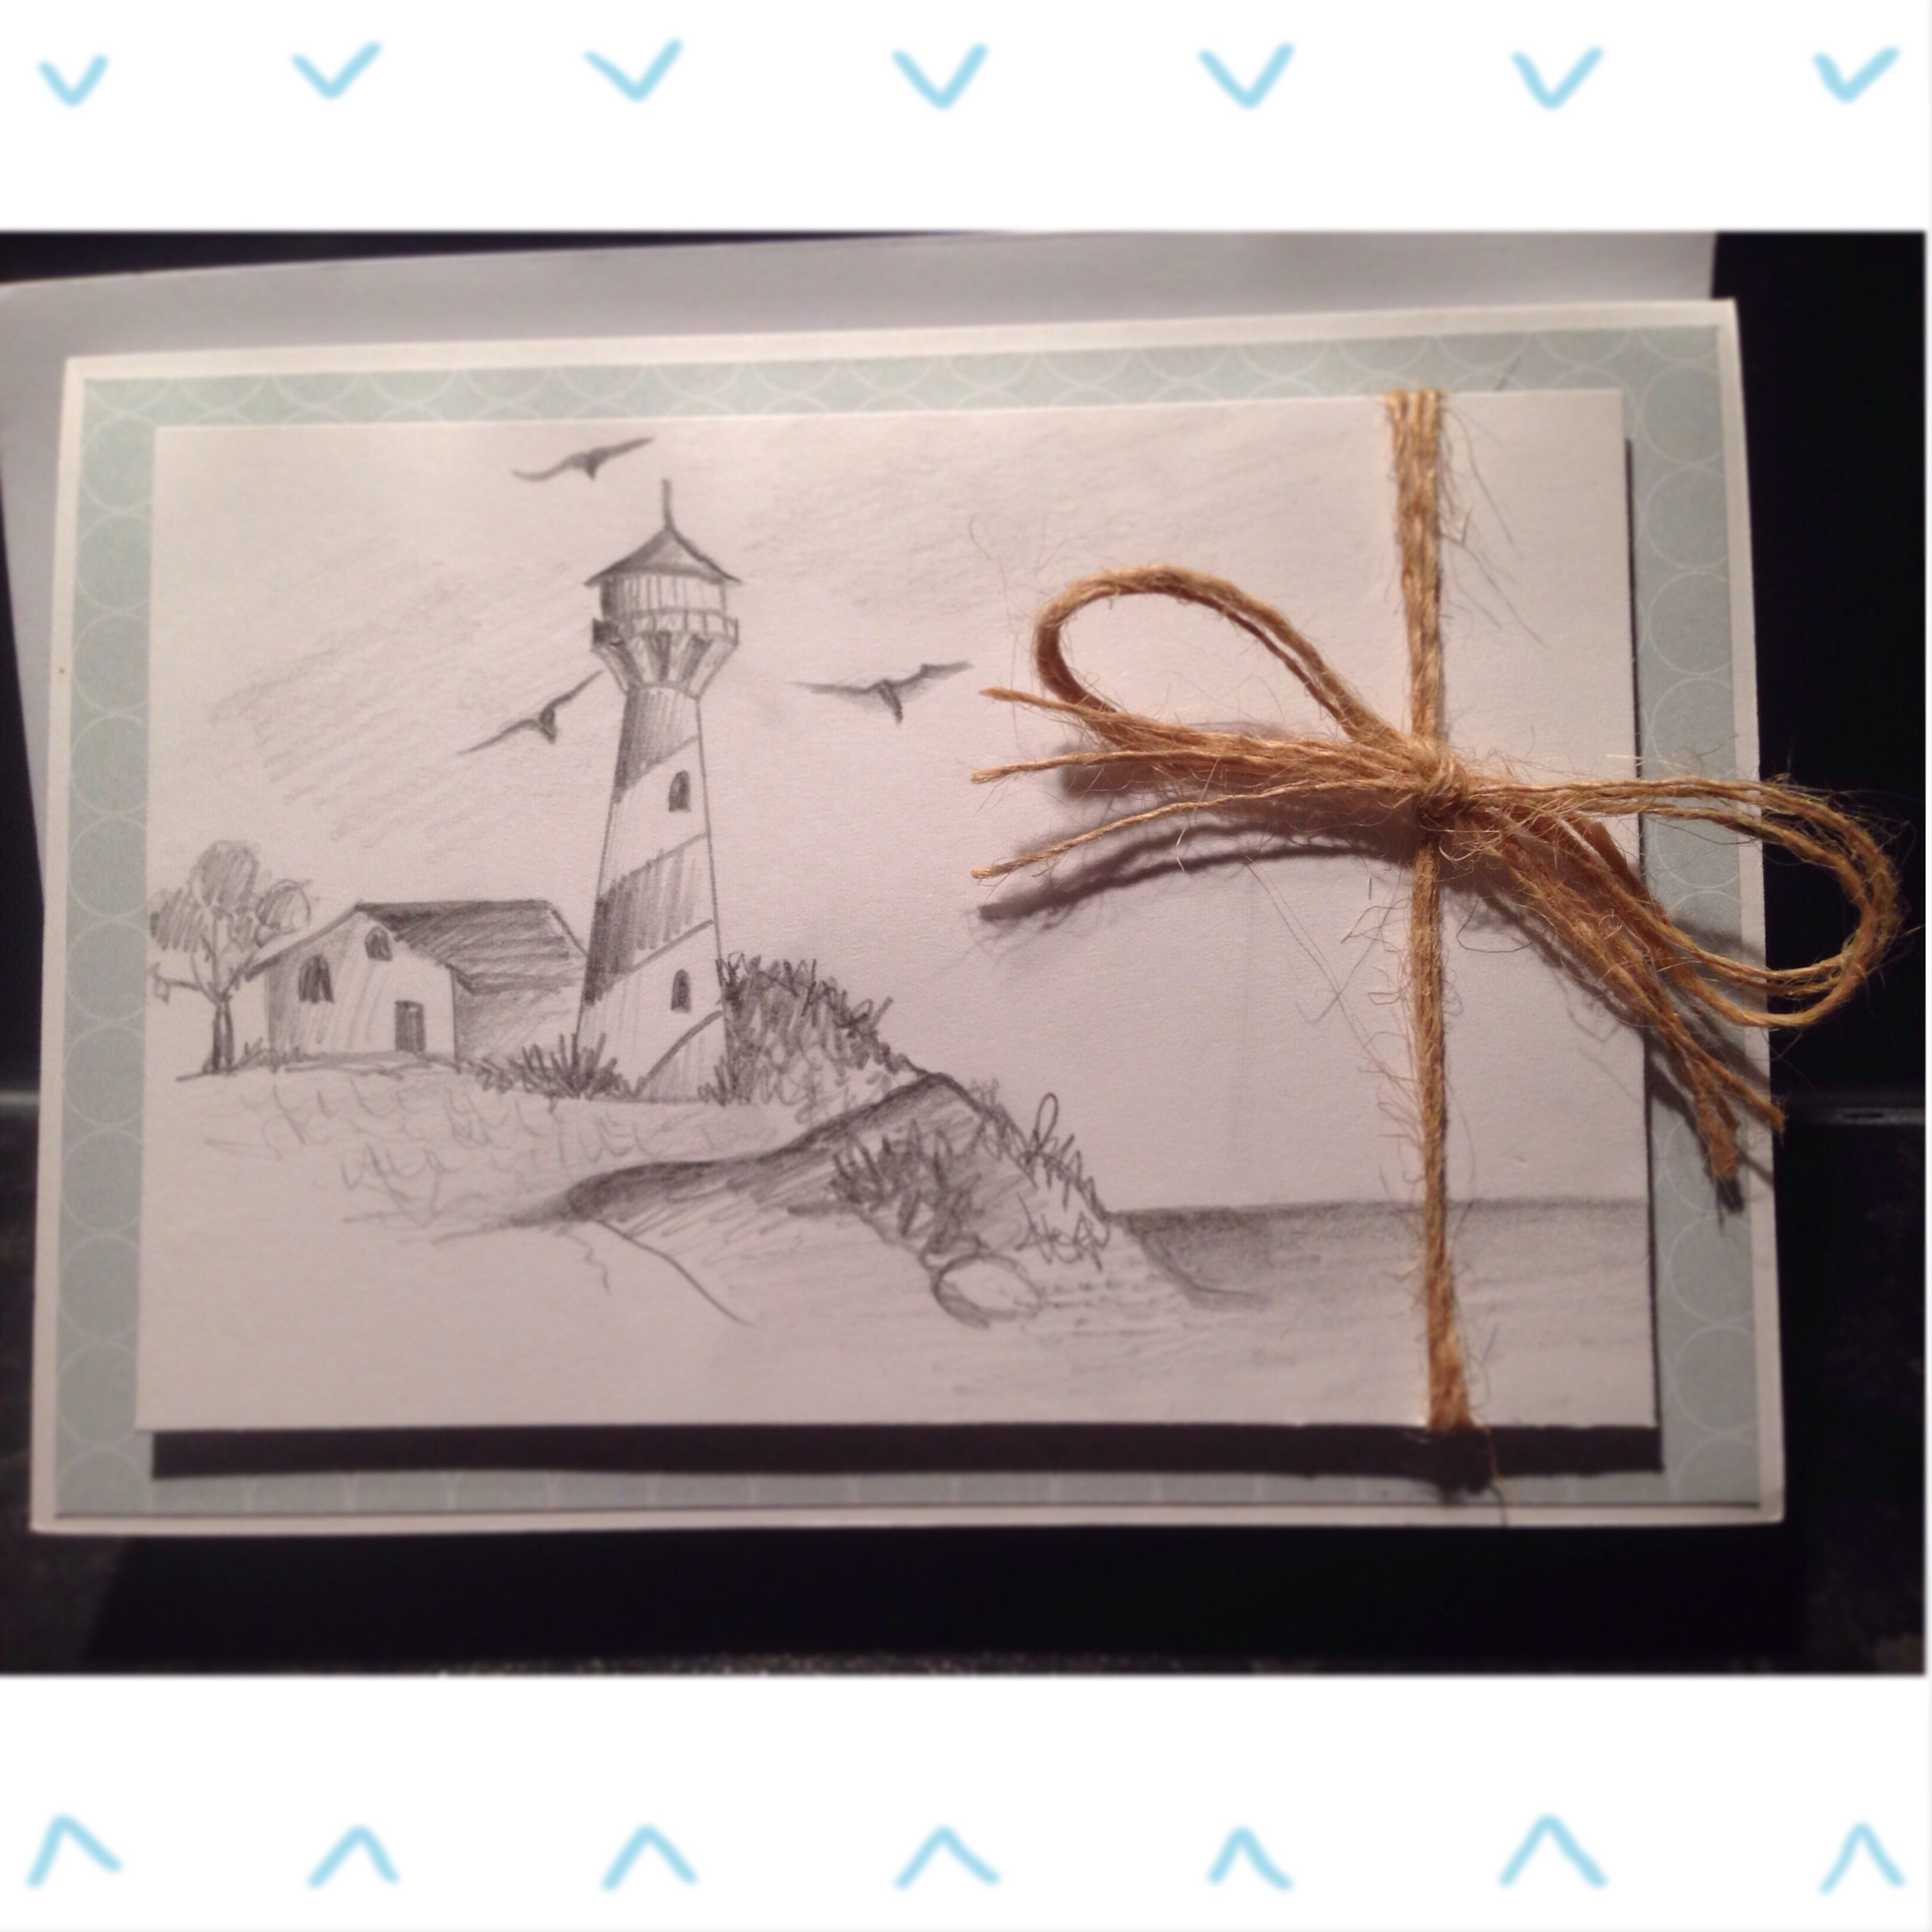 Homemade lighthouse sketch father in law birthday card with twine homemade lighthouse sketch father in law birthday card with twine kristyandbryce Choice Image